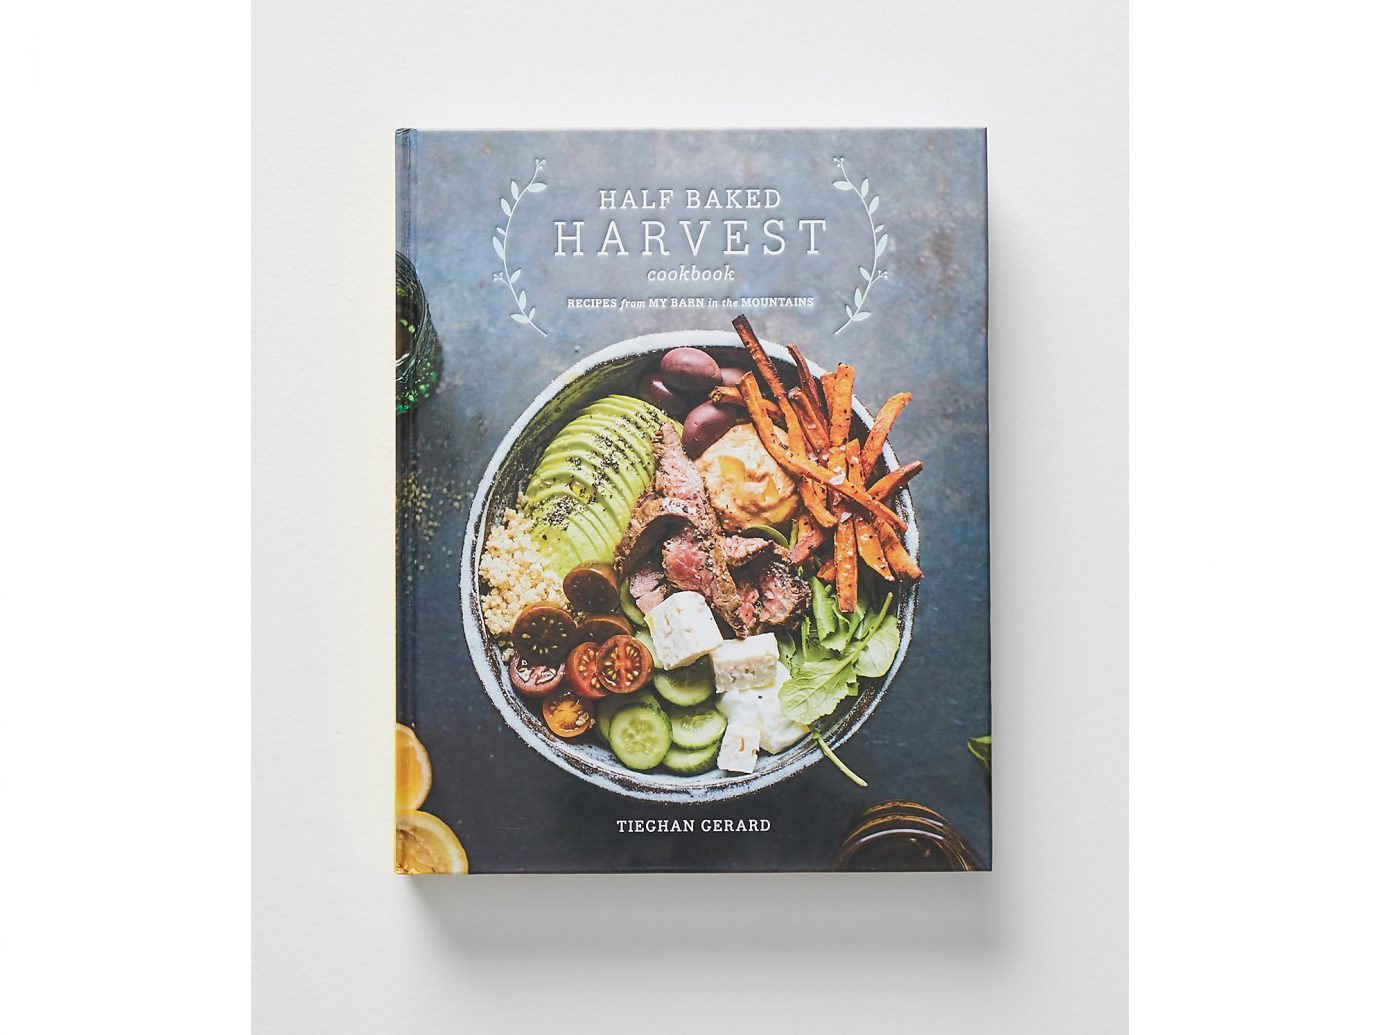 Cookbook: Half Baked Harvest Cookbook